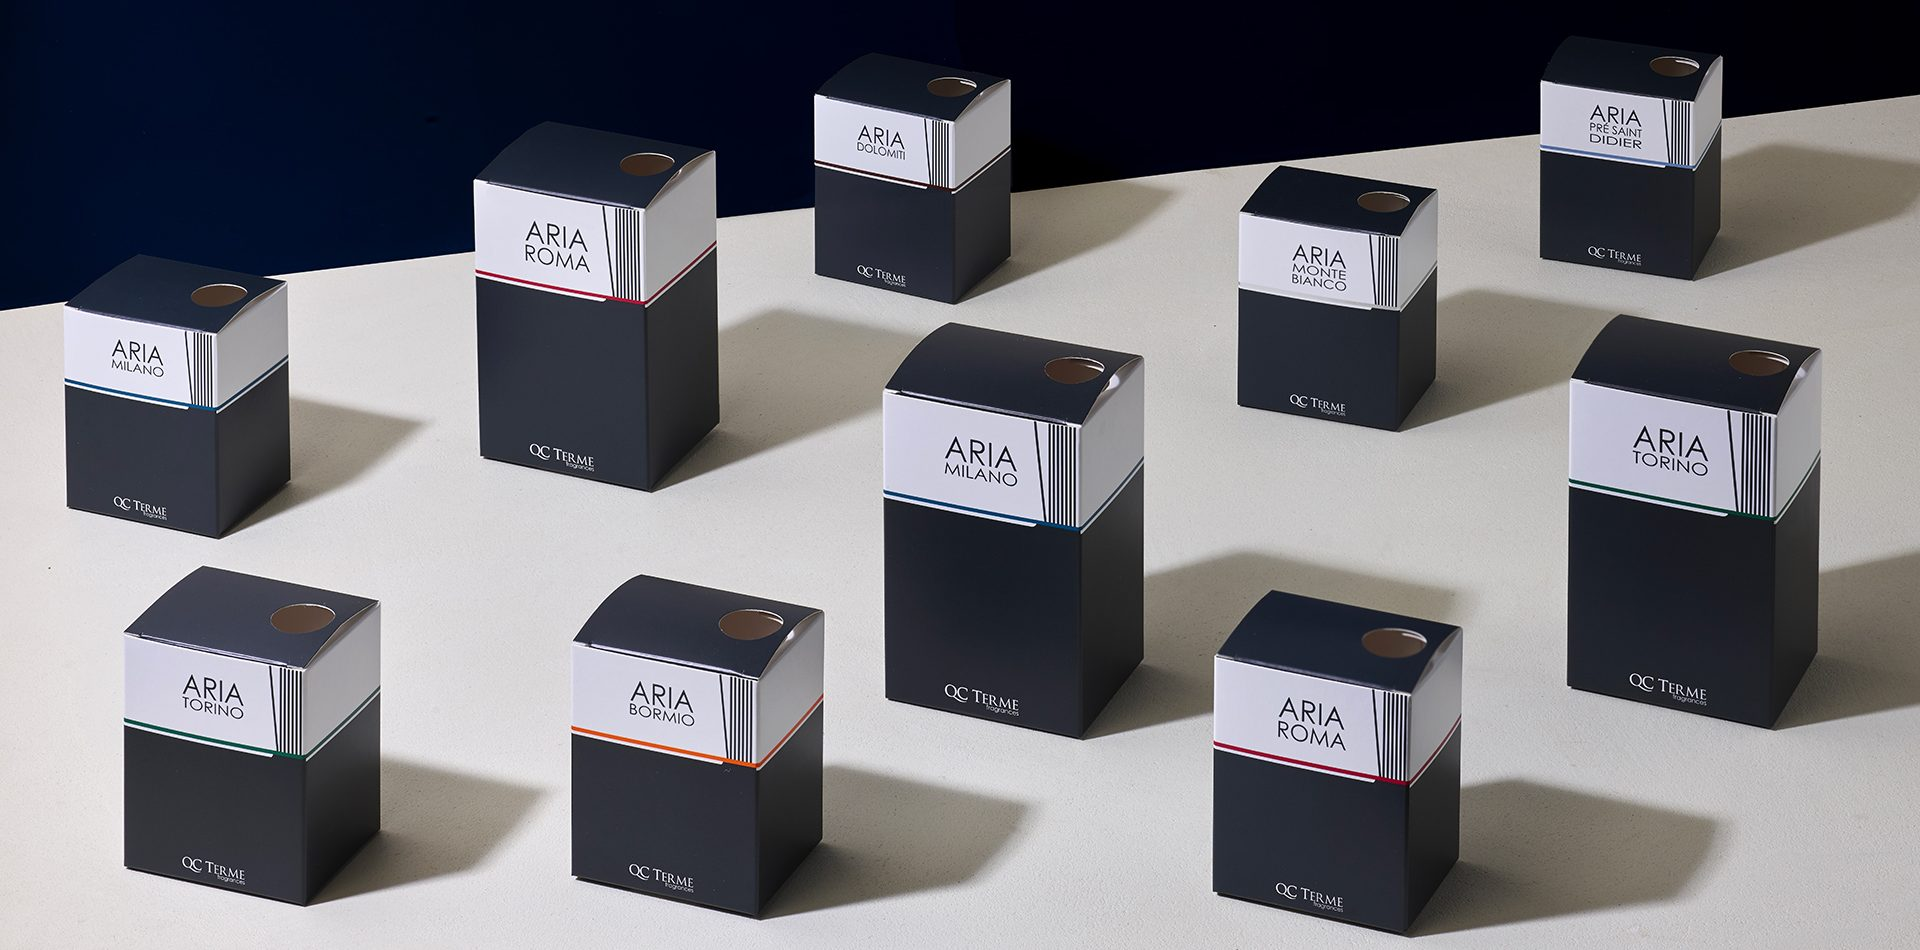 Stampa di packaging e scatole personalizzate